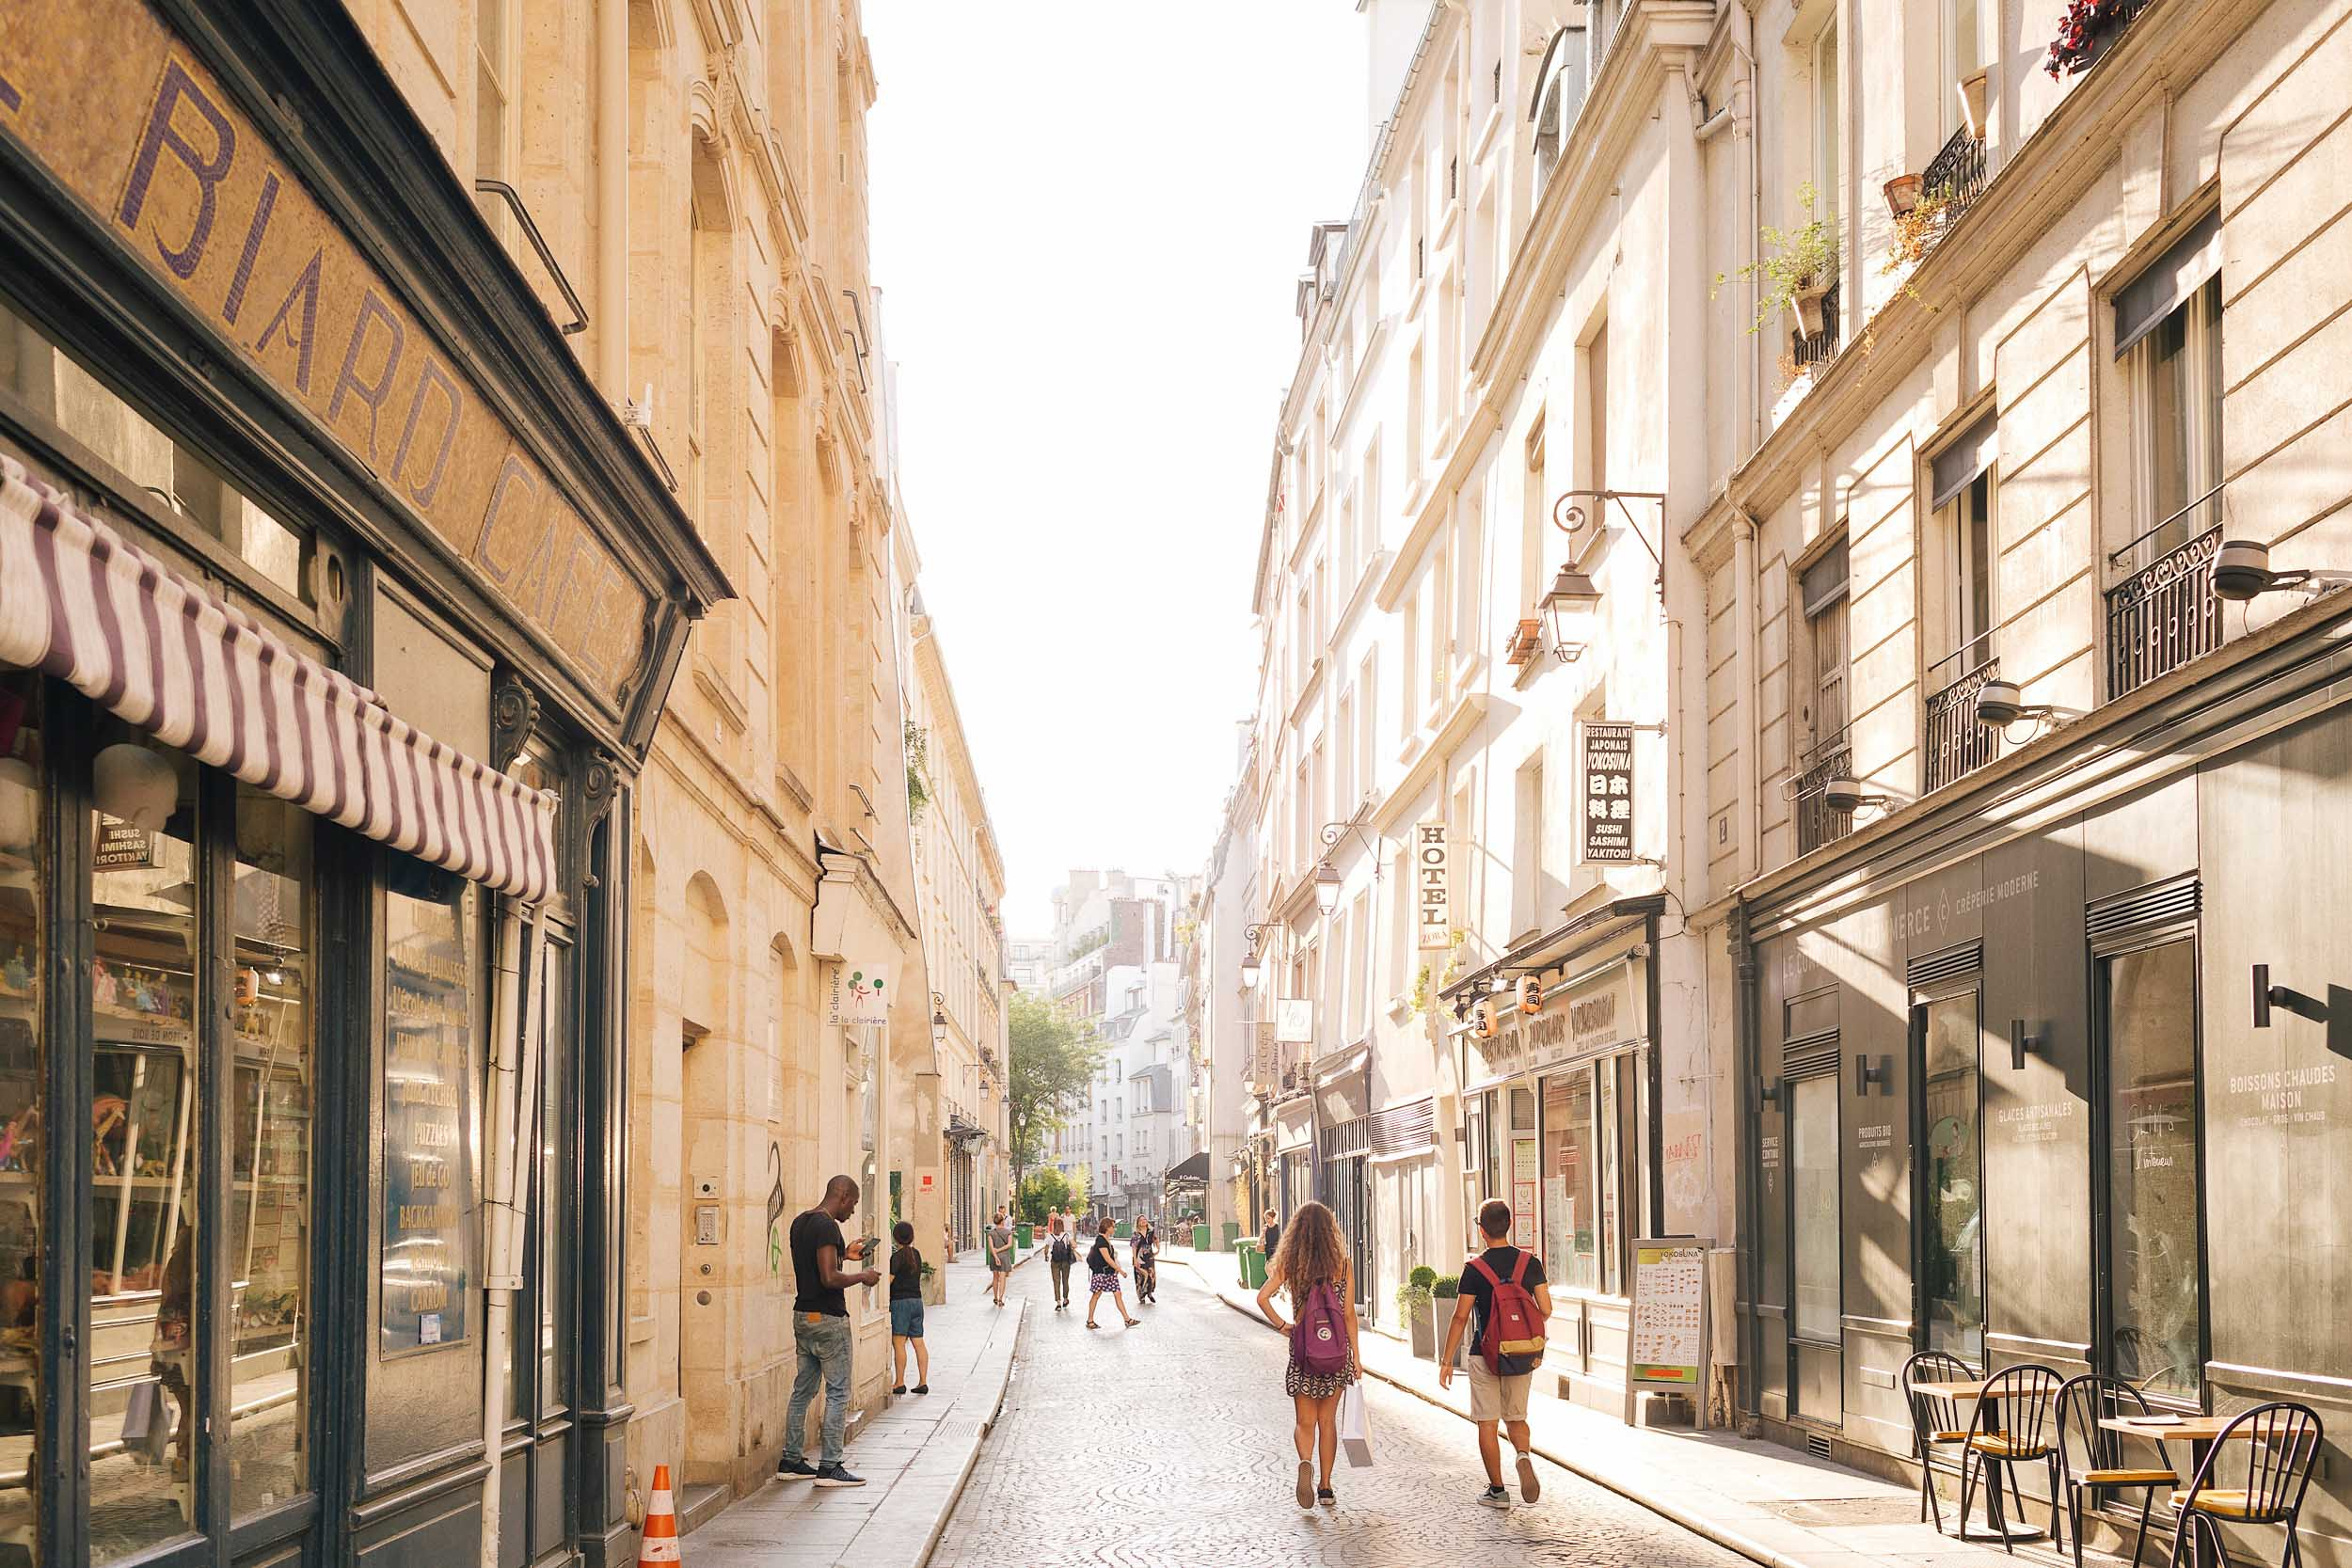 A very hot and sunny day in Paris